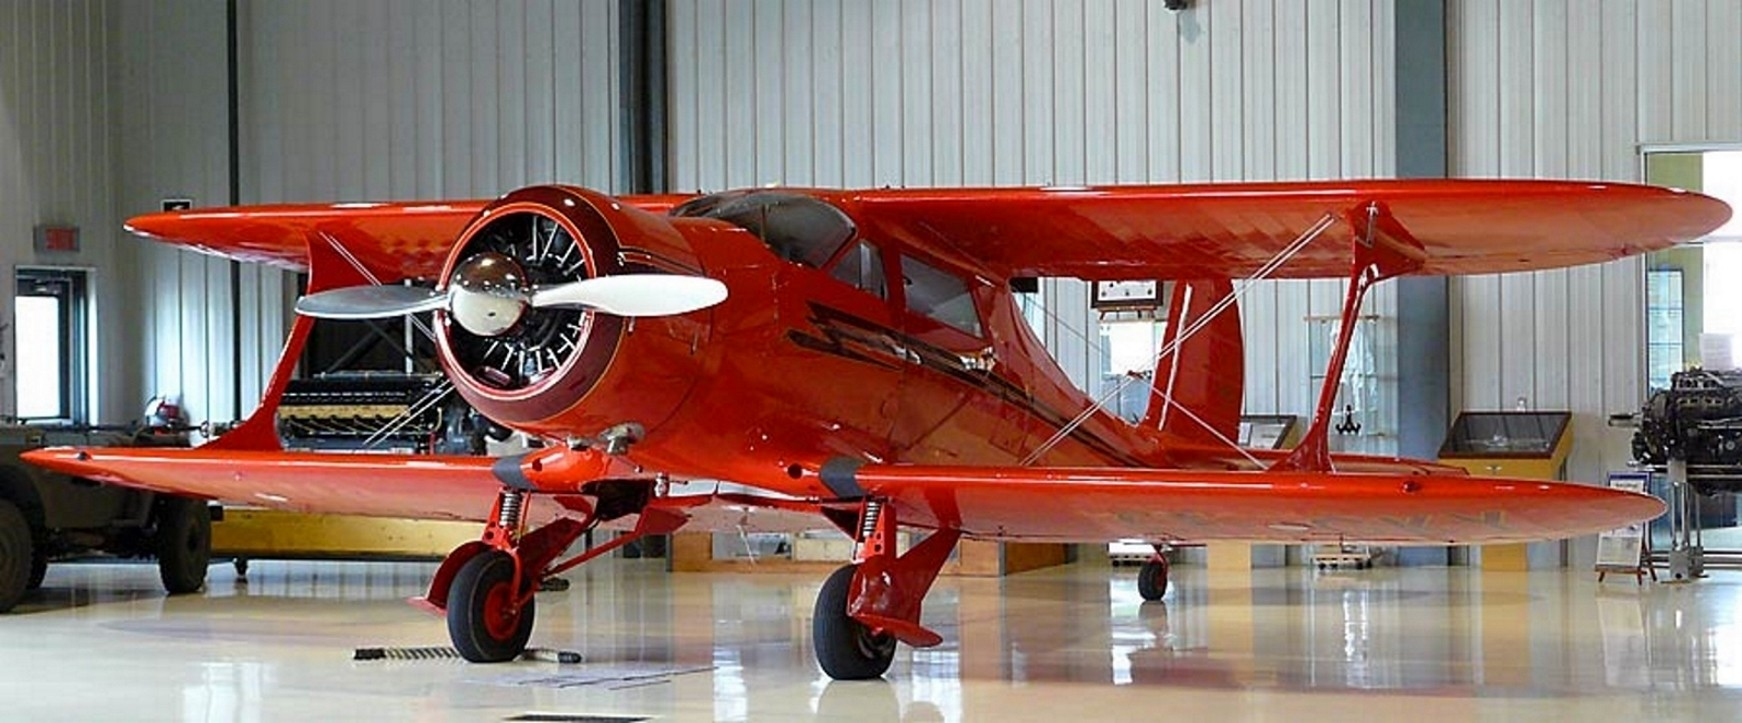 Beechcraft Model 17 Staggerwing - Gå Rundt